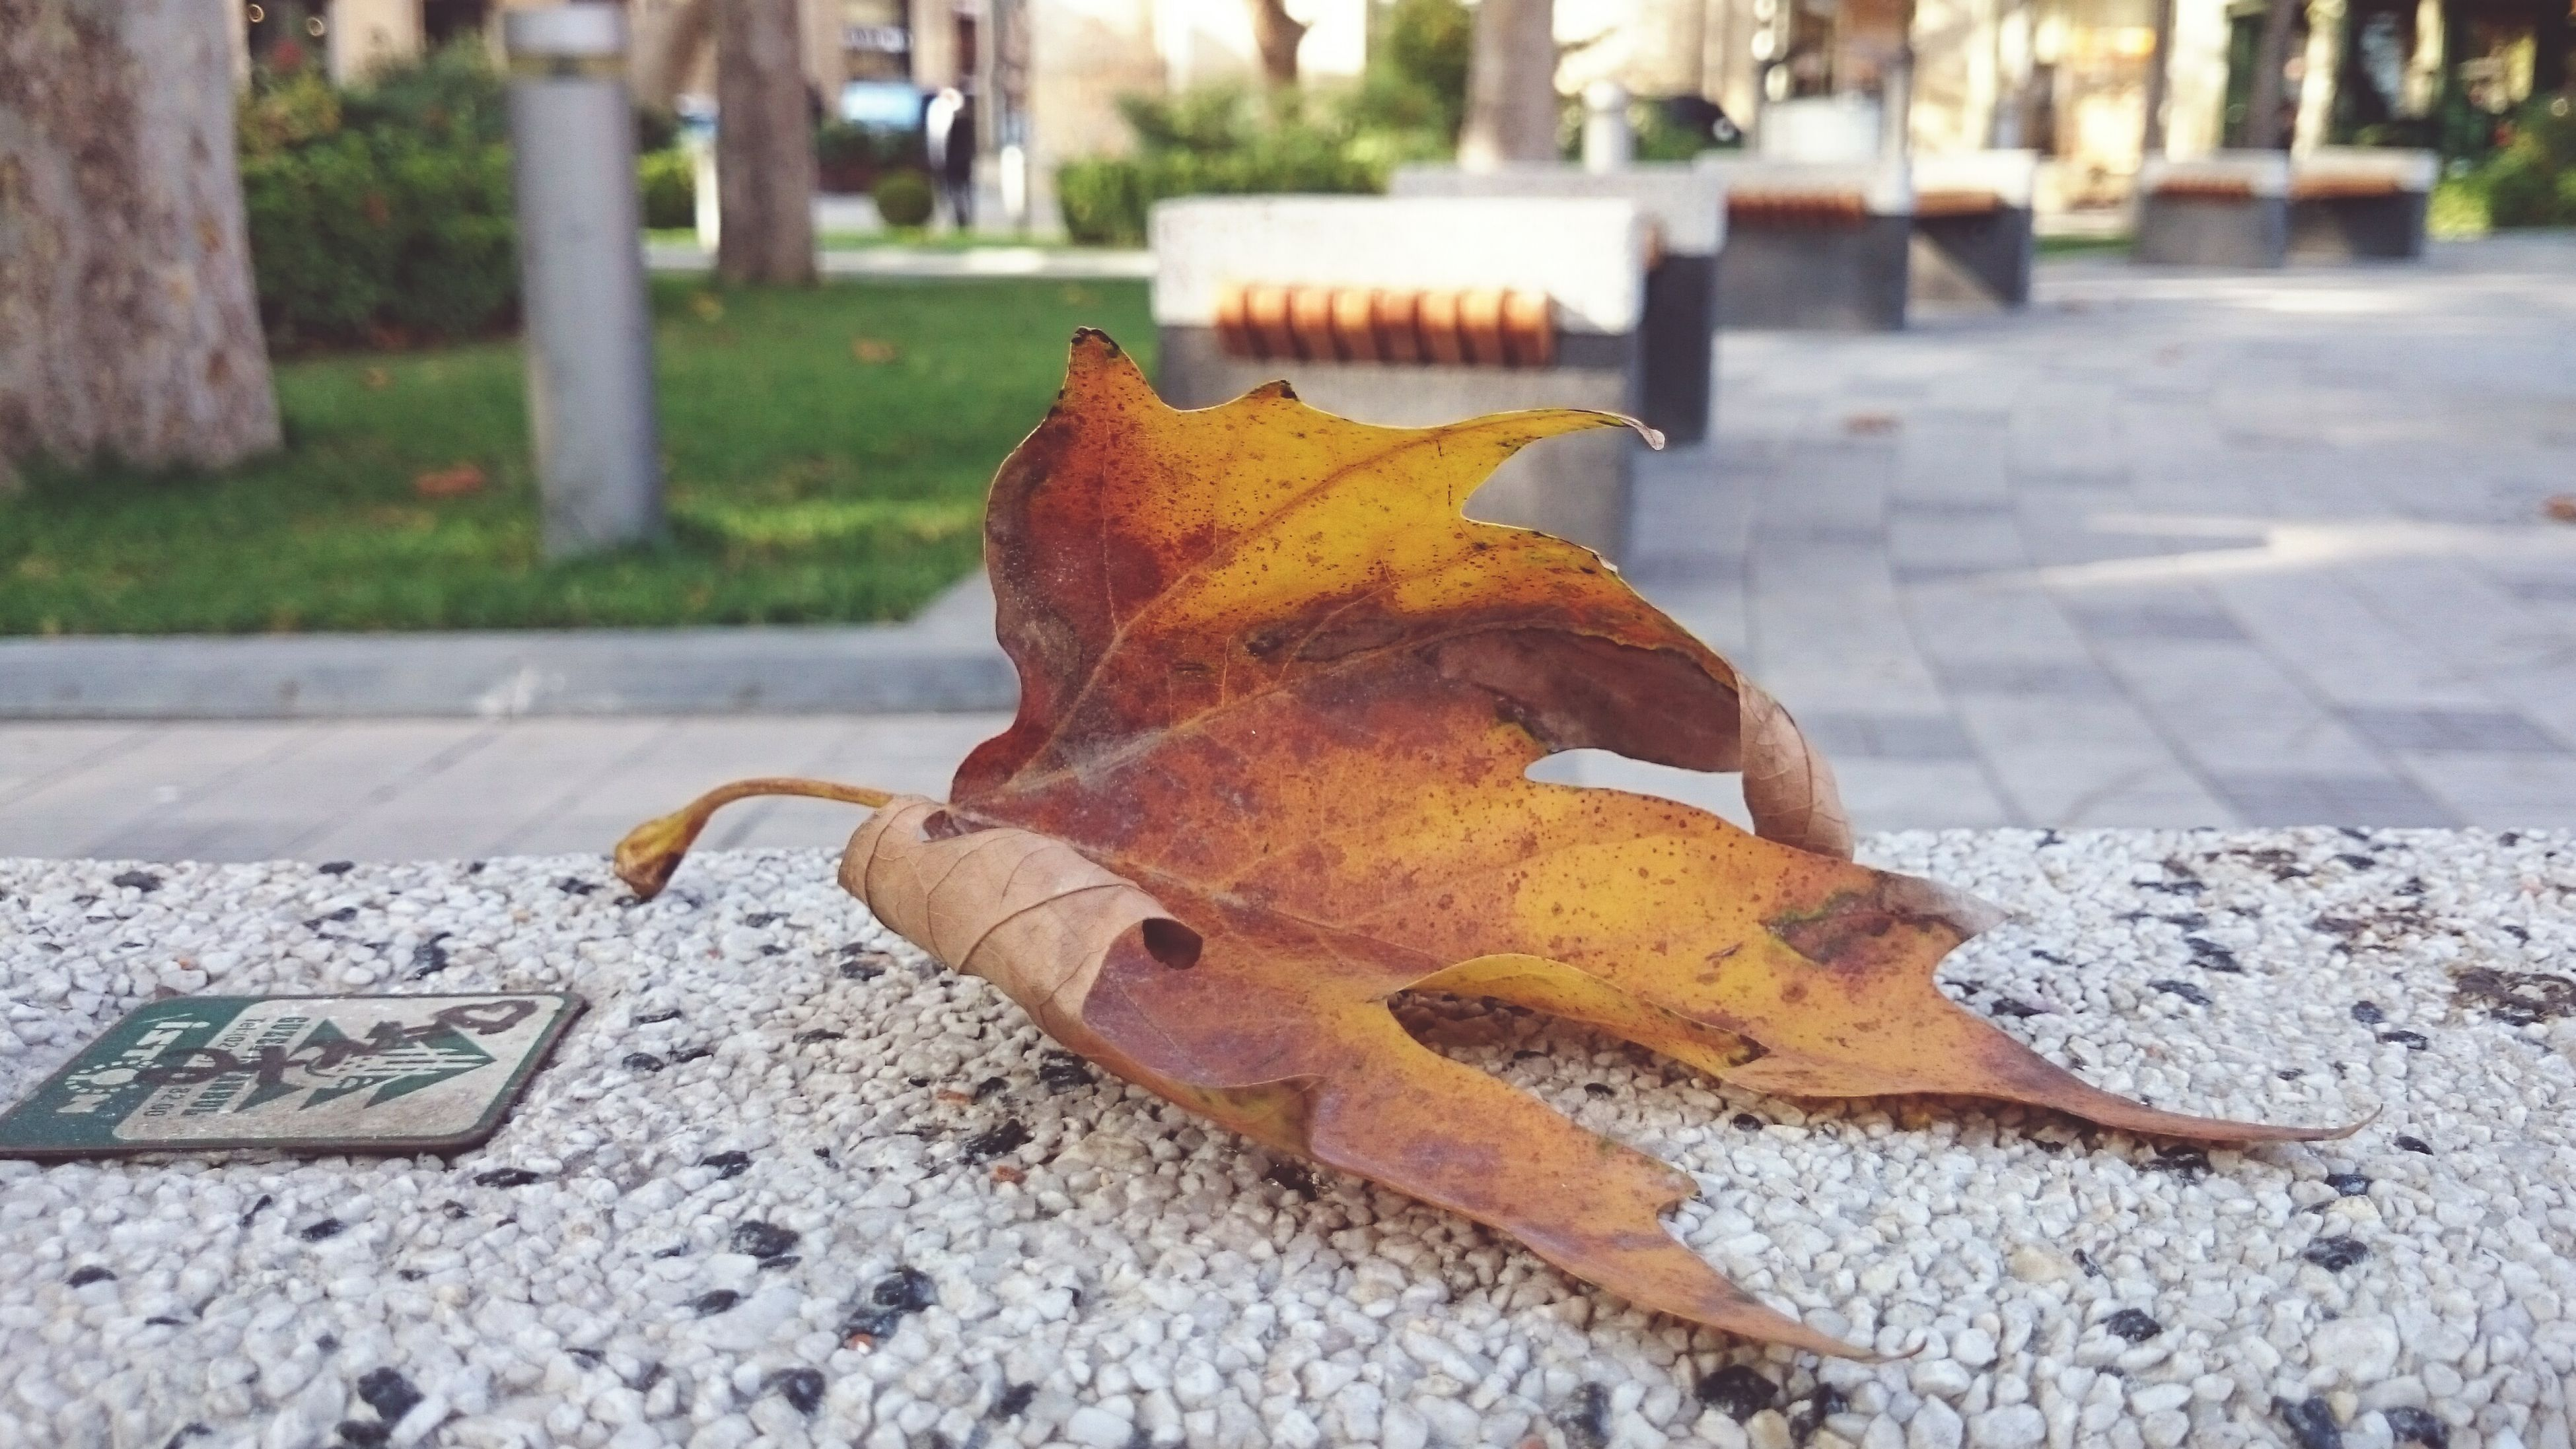 street, focus on foreground, leaf, close-up, road, autumn, selective focus, day, surface level, sidewalk, outdoors, asphalt, sunlight, ground, no people, change, fallen, dry, footpath, leaves